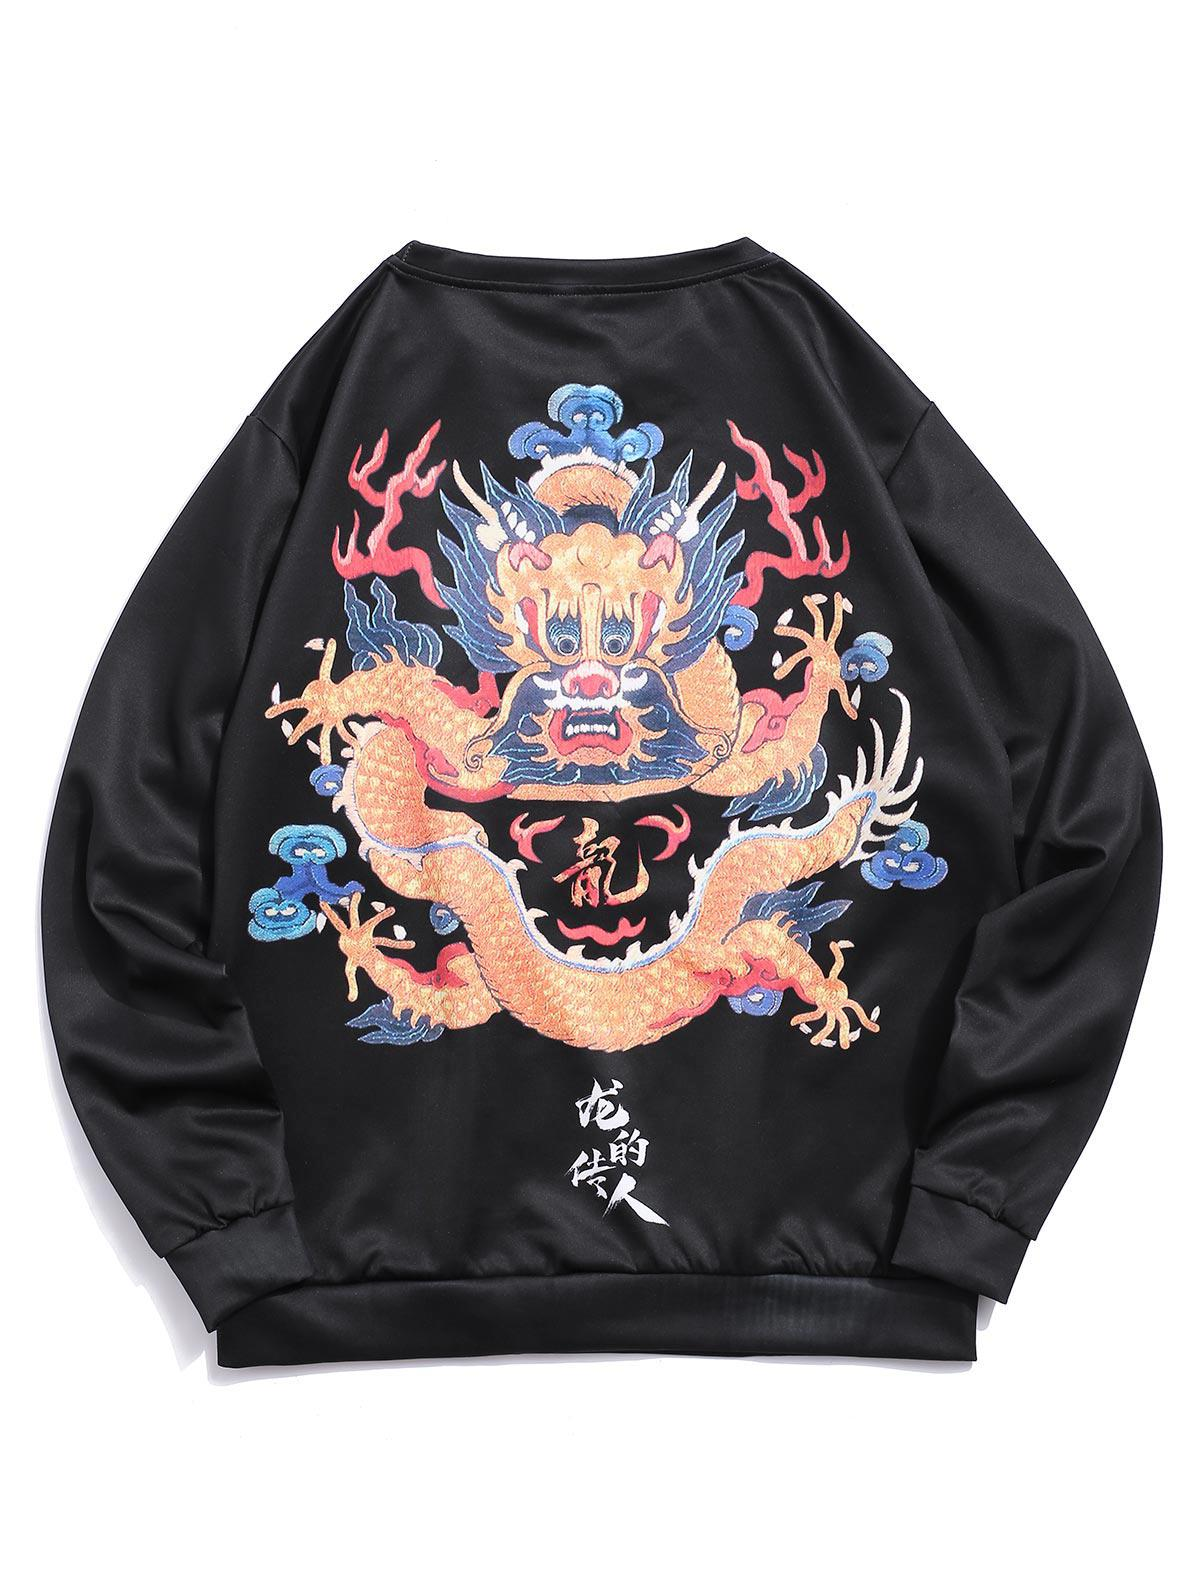 Letter Oriental Dragon Graphic Print Sweatshirt фото